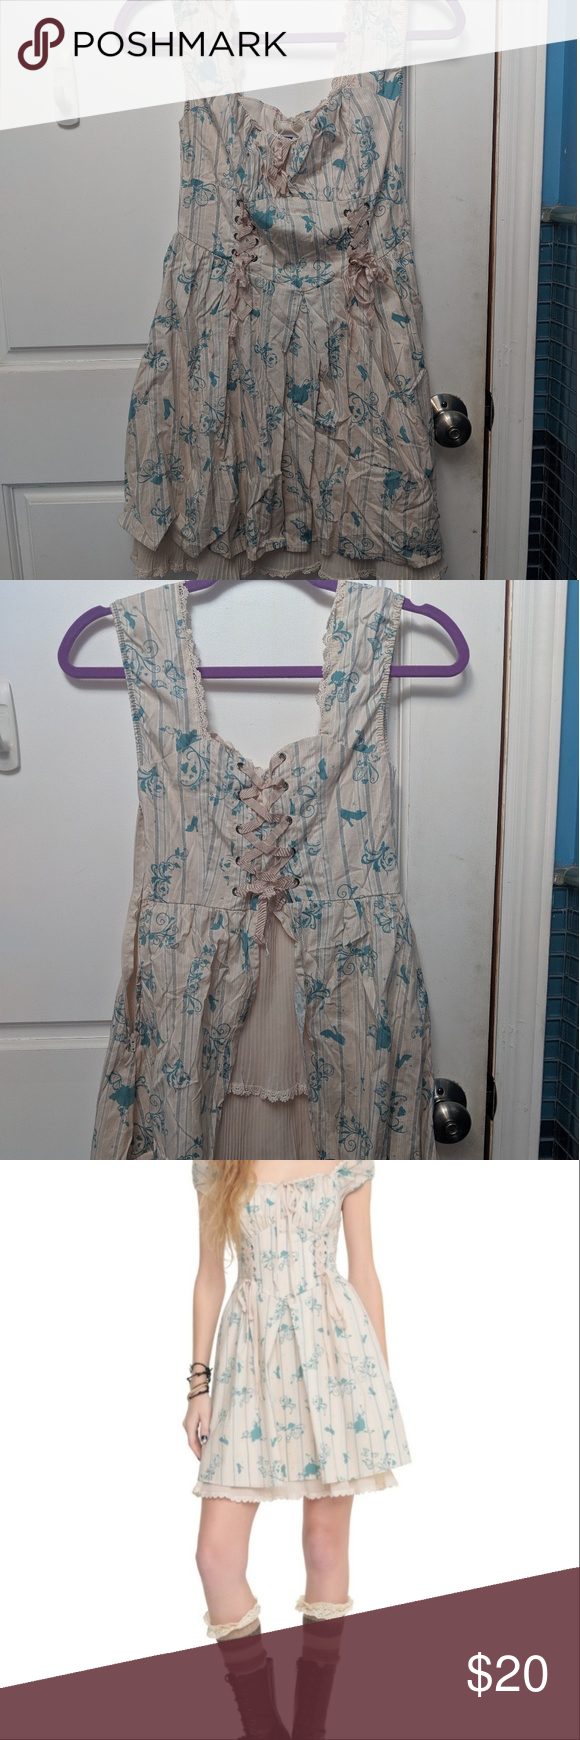 Hot topic exclusive Cinderella collection dress Great condition Hot Topic Exclusive dress From limited edition Cinderella collection!